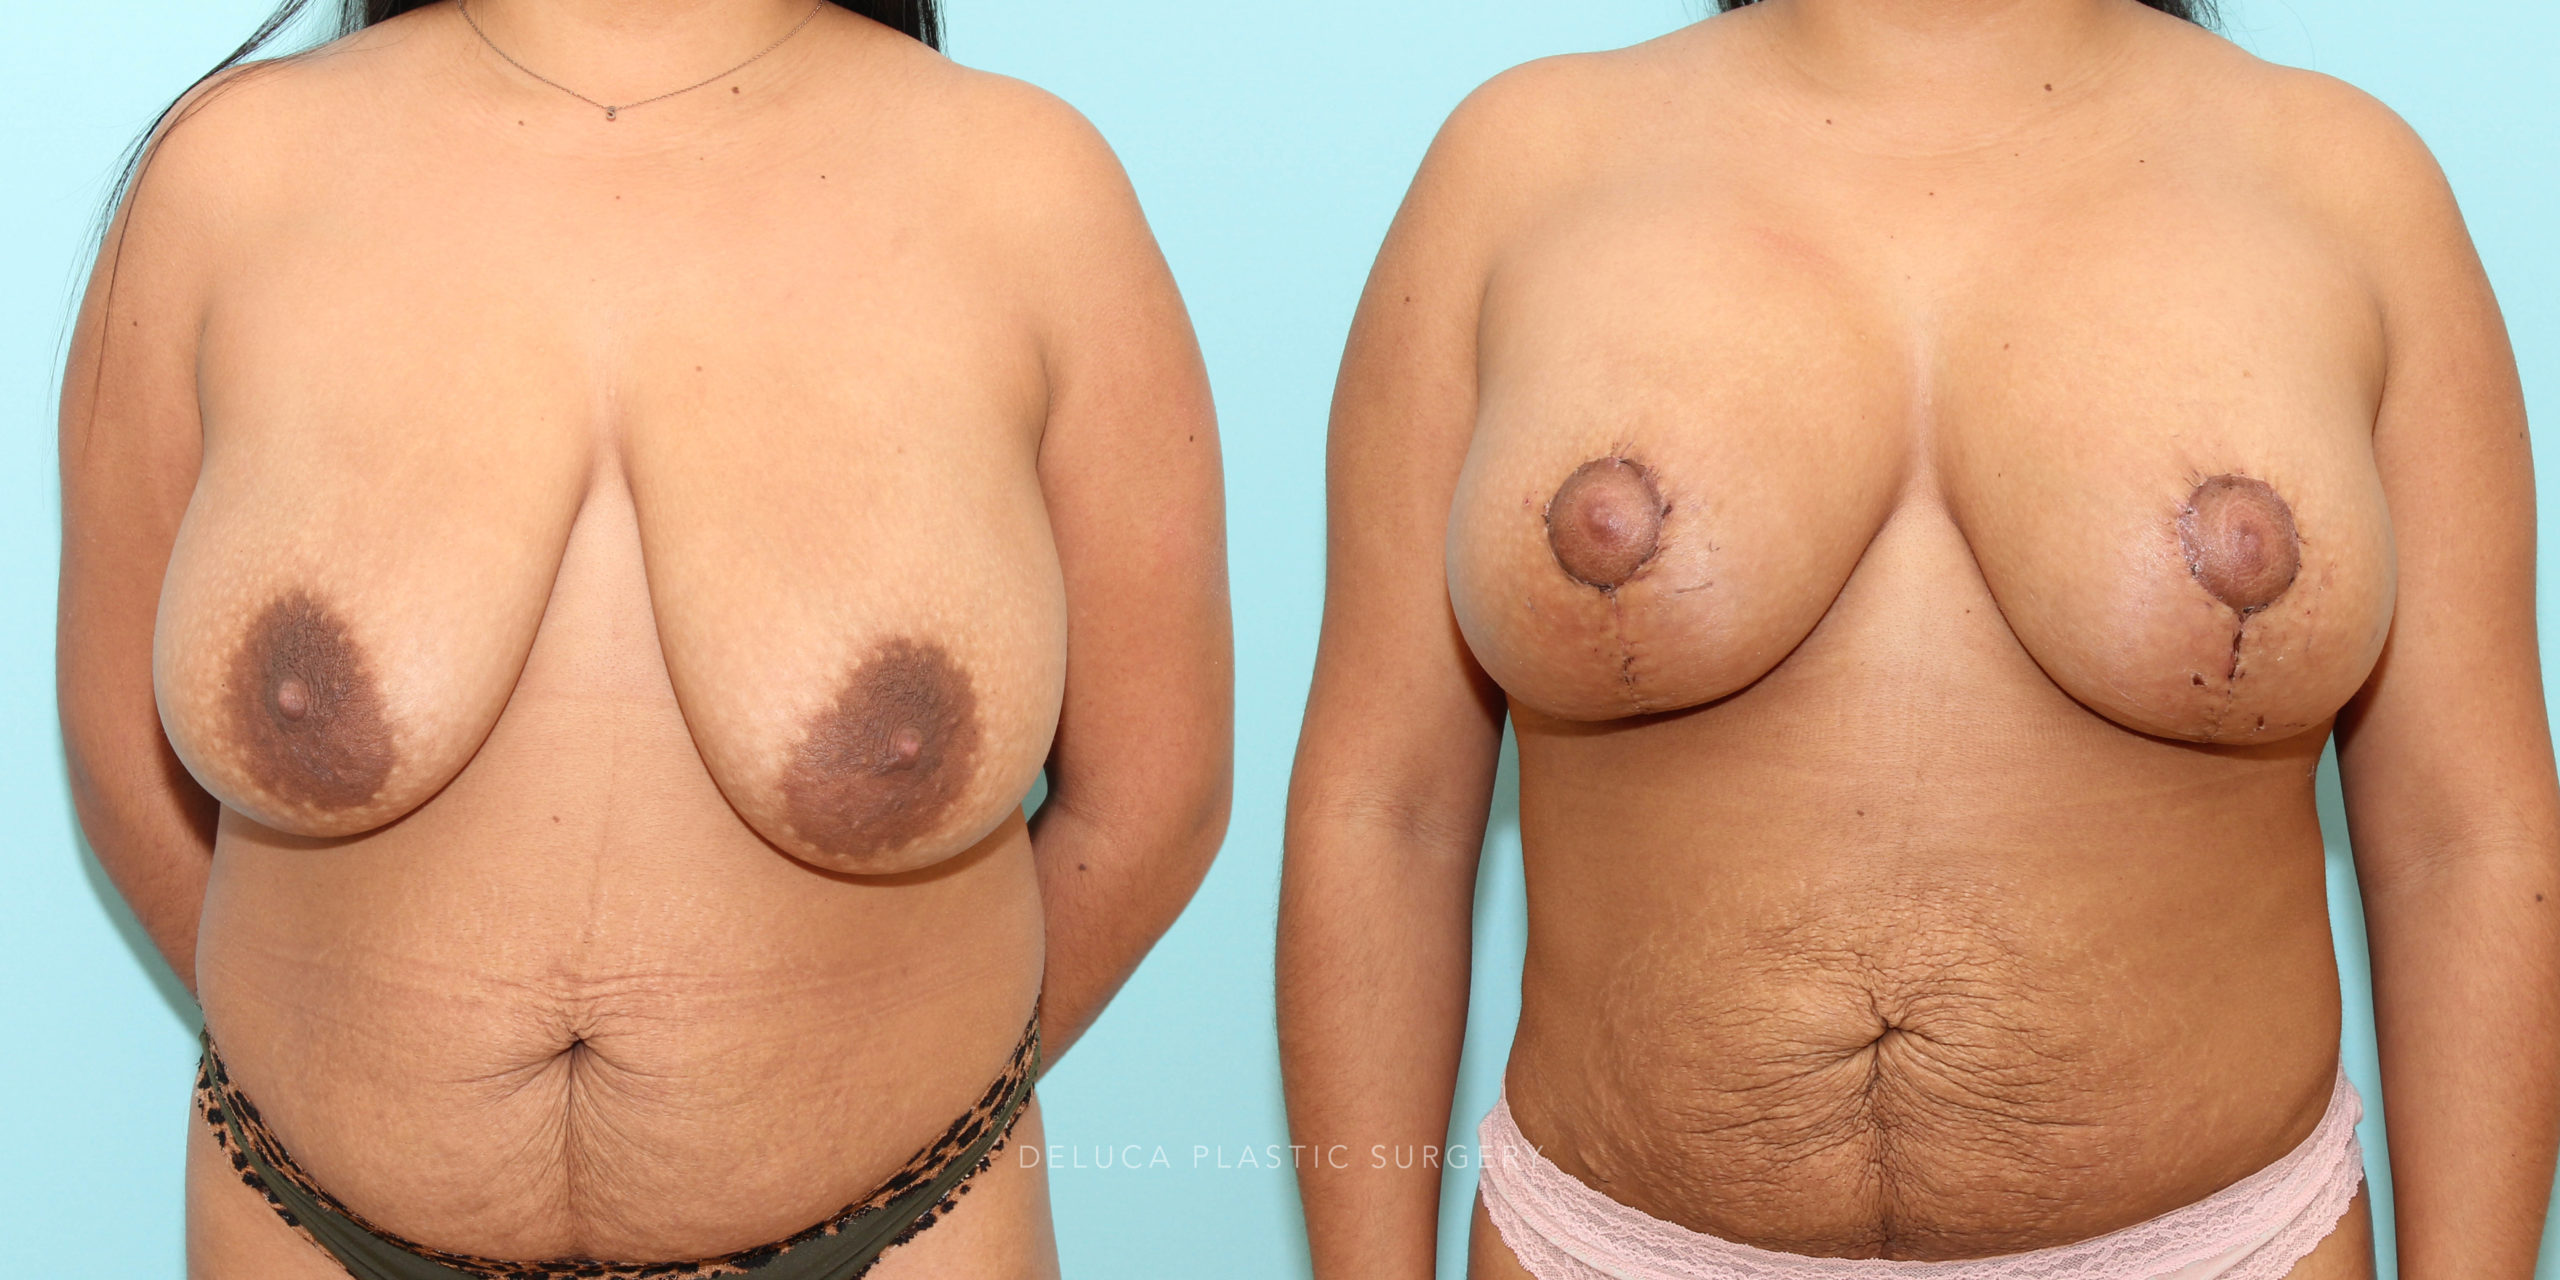 27 y/o Augment and Breast Lift with 275 MP Silicone And Liposuction 360